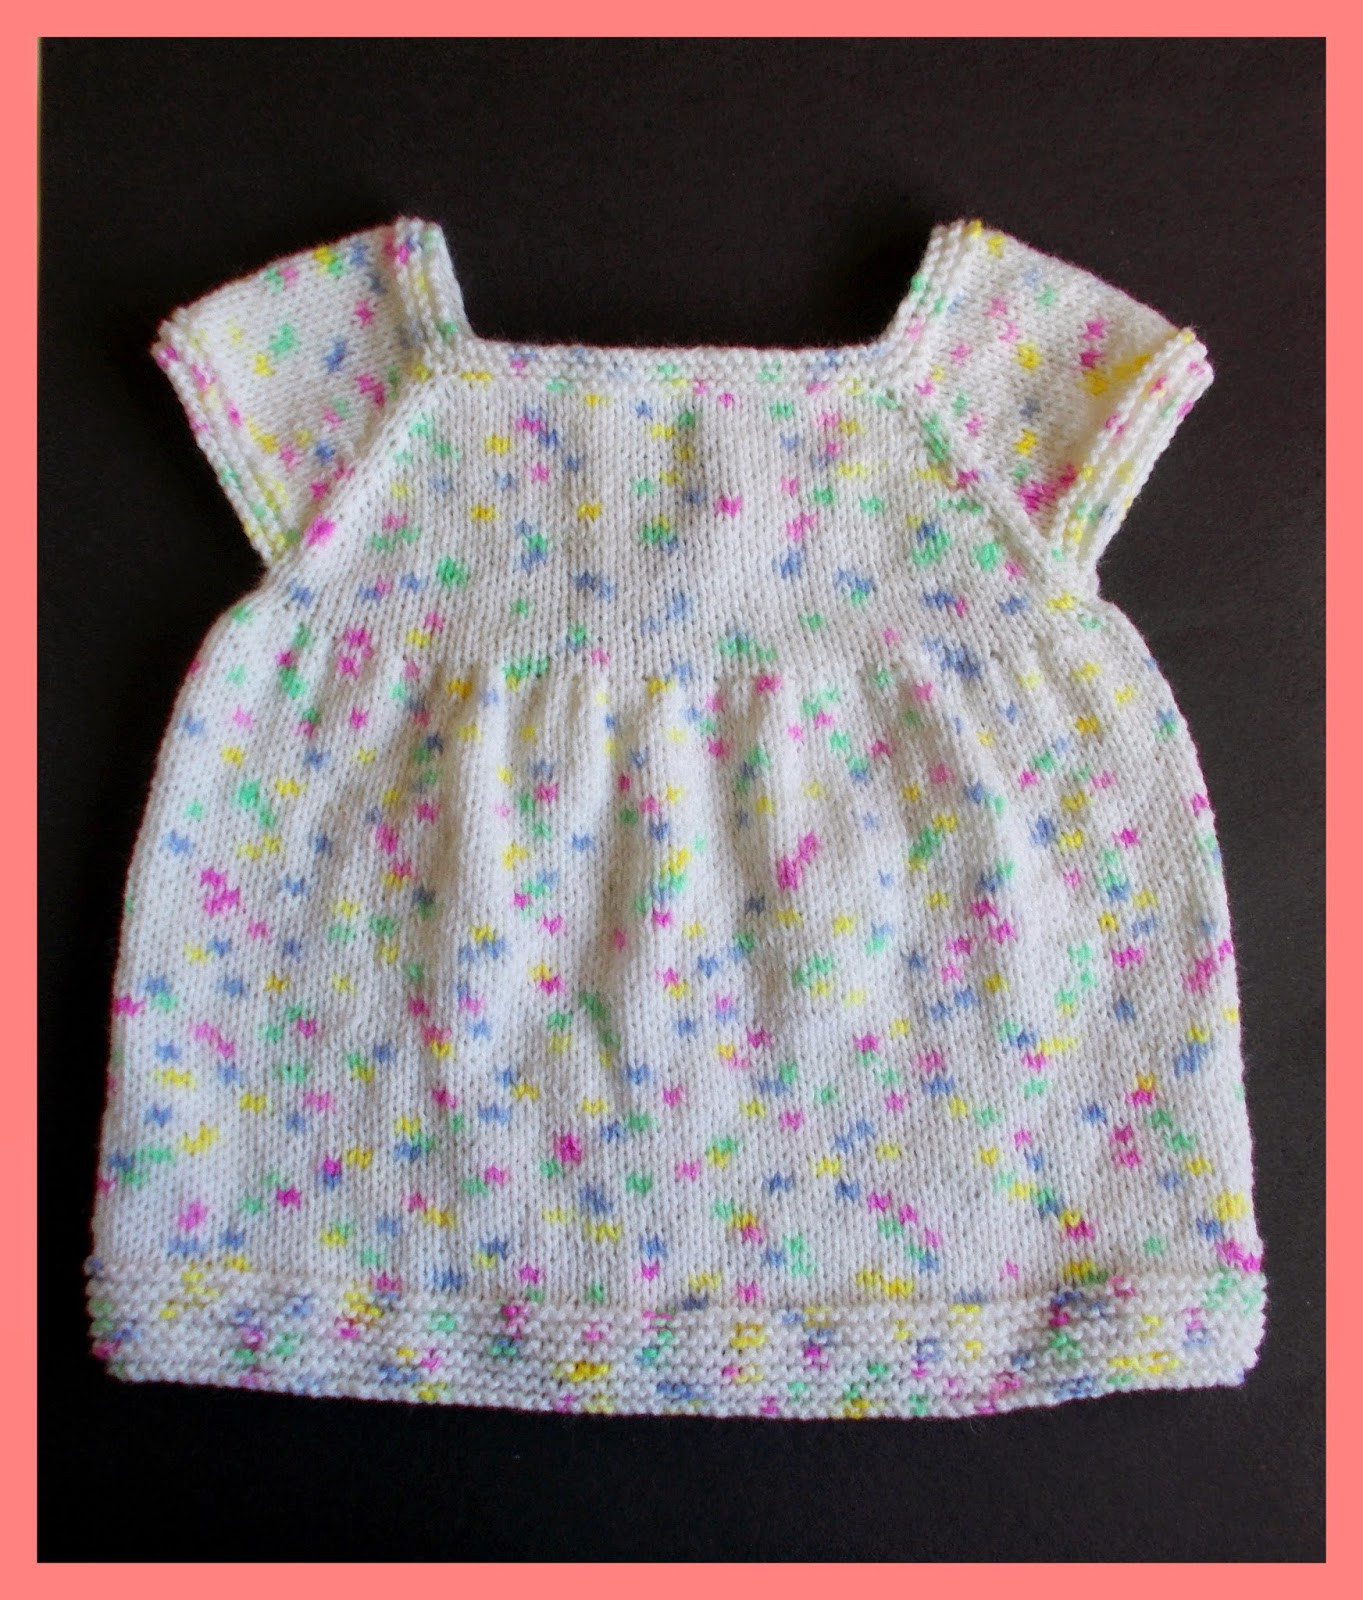 Best Of Marianna S Lazy Daisy Days Starting Out Knitted Baby Dress Knitted Baby Dress Of Brilliant 49 Photos Knitted Baby Dress